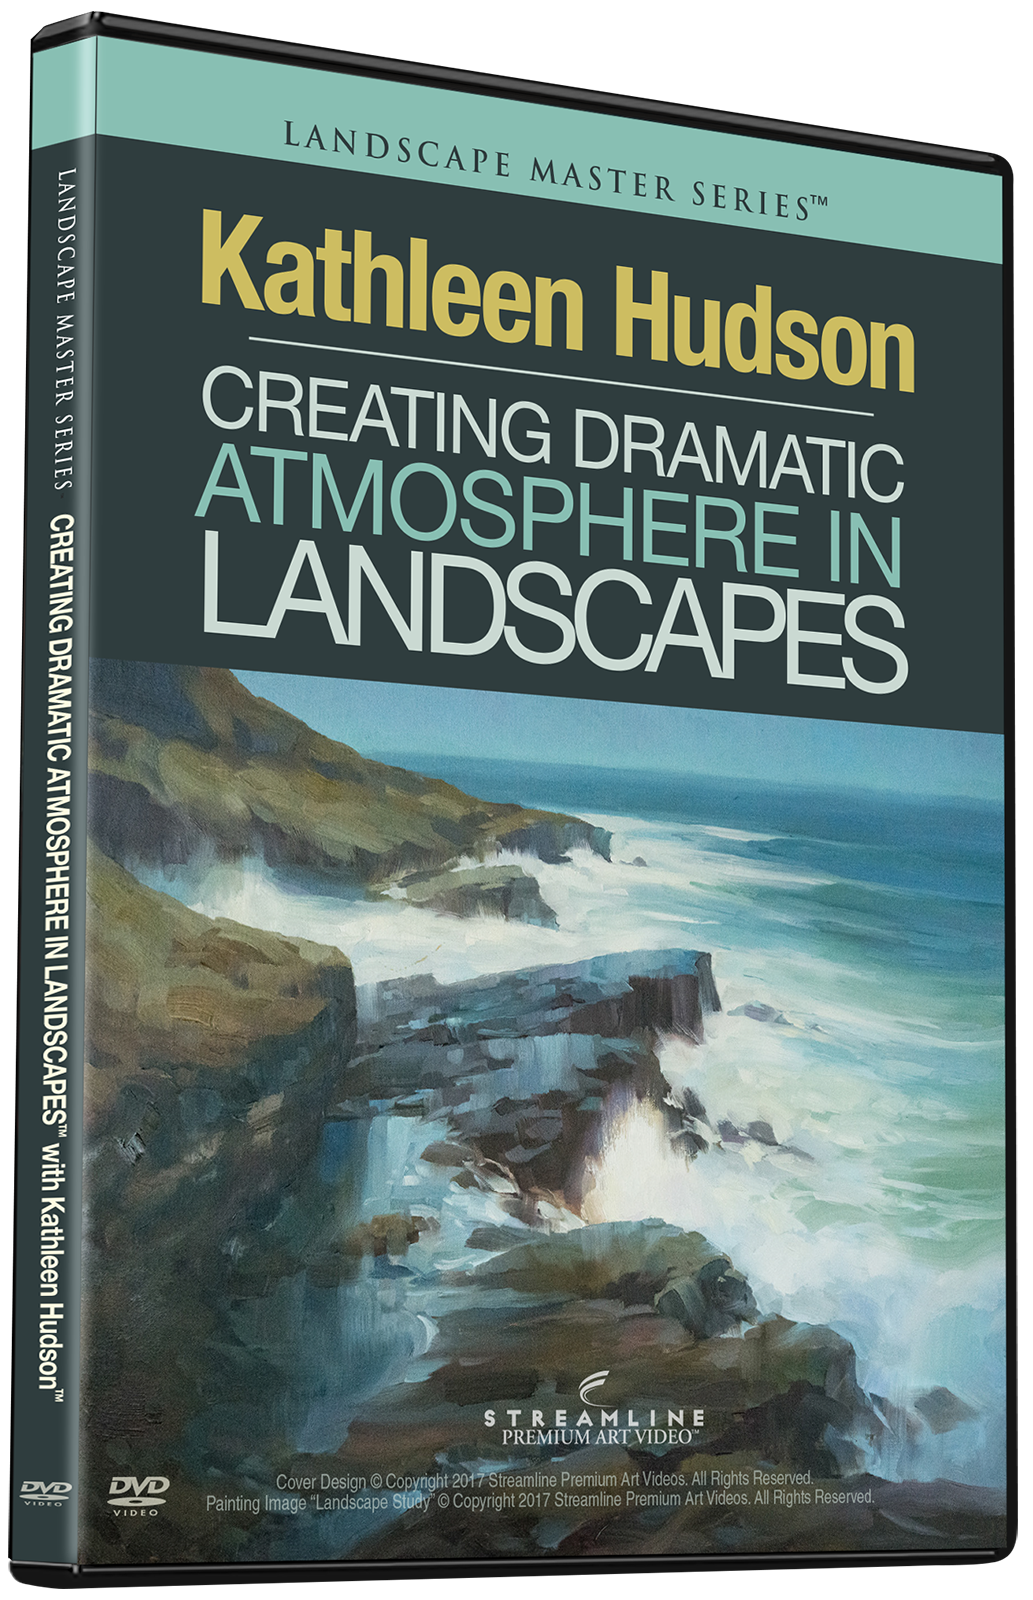 Kathleen Hudson: Creating Dramatic Atmosphere in Landscapes